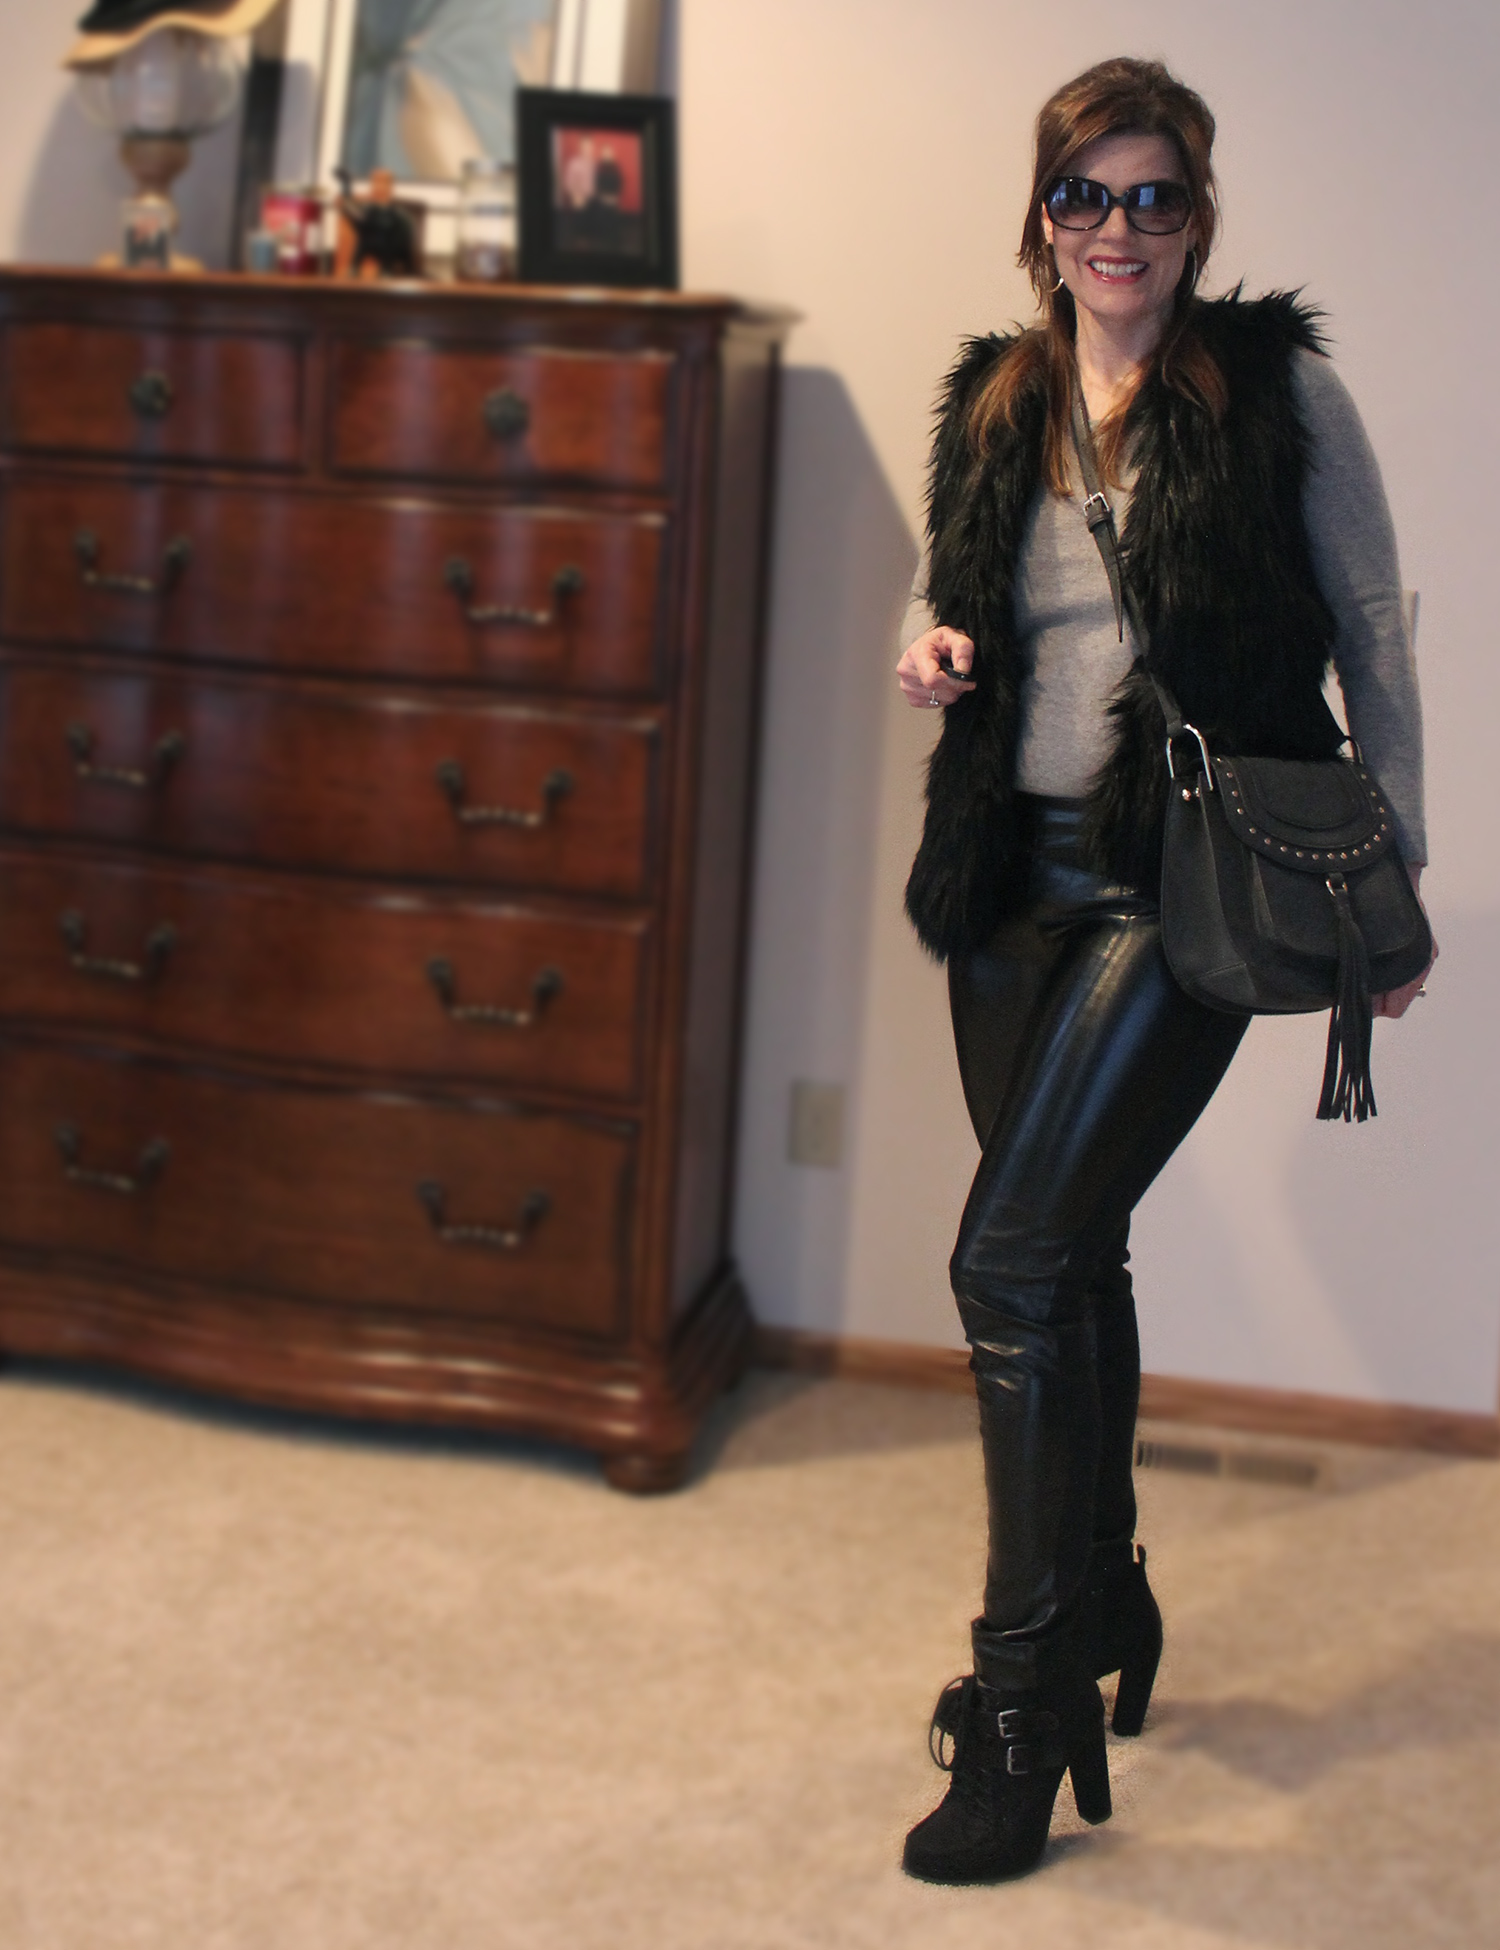 winter outfit, black leather outfit, fur vest, cool girl